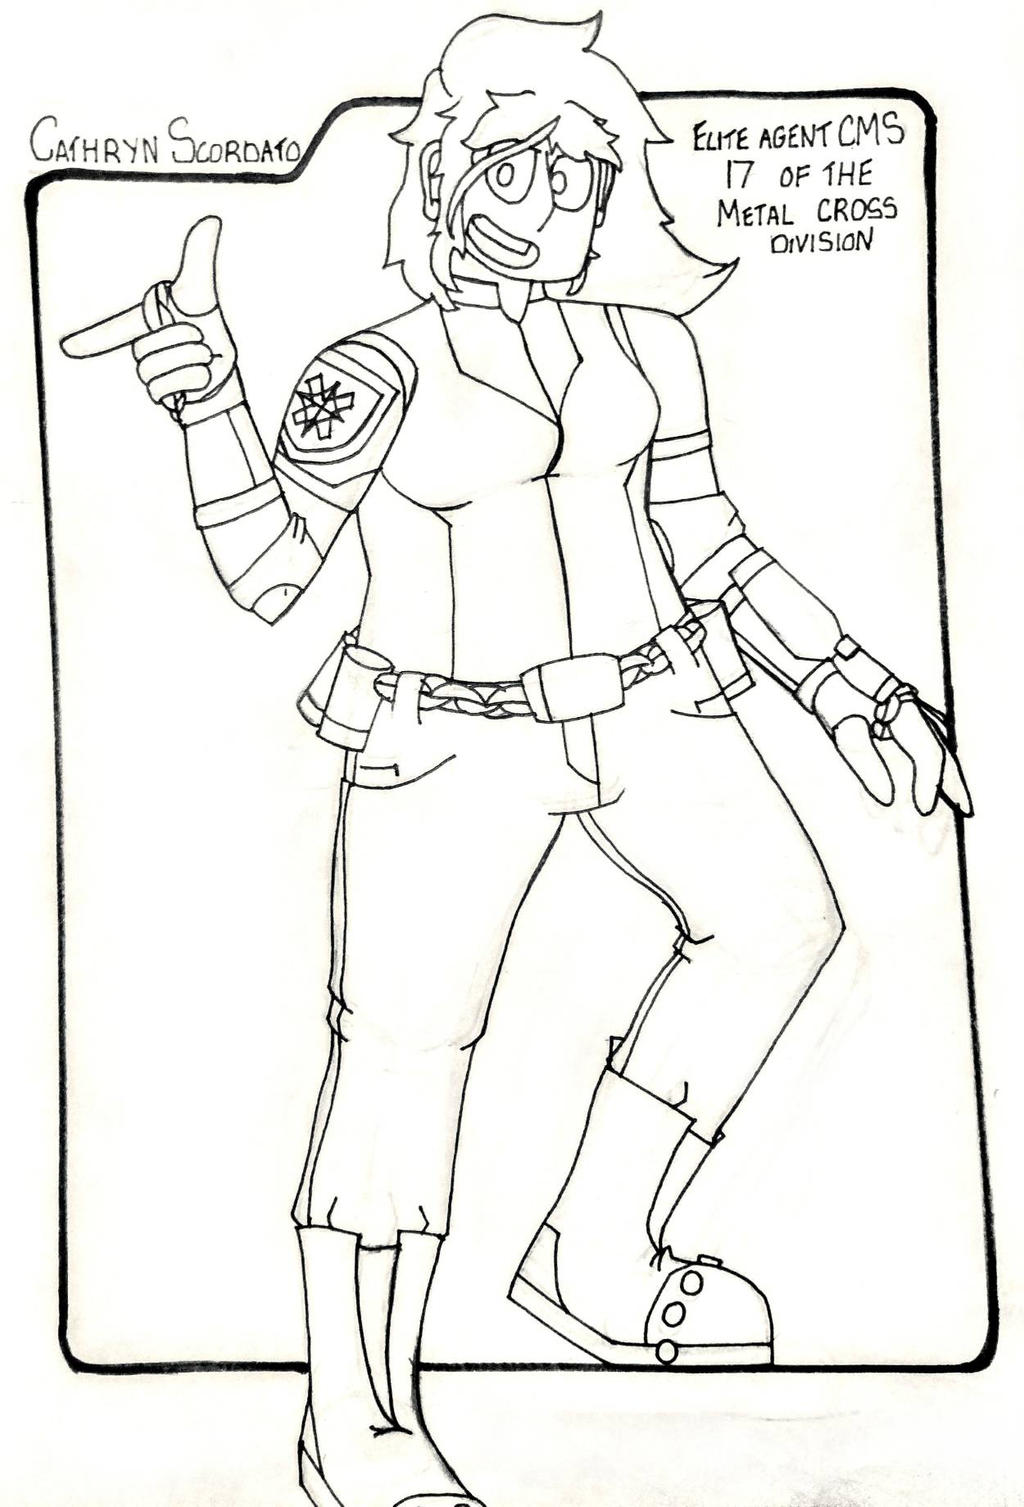 Cathryn Scordato [OC Reference] - Uncolored